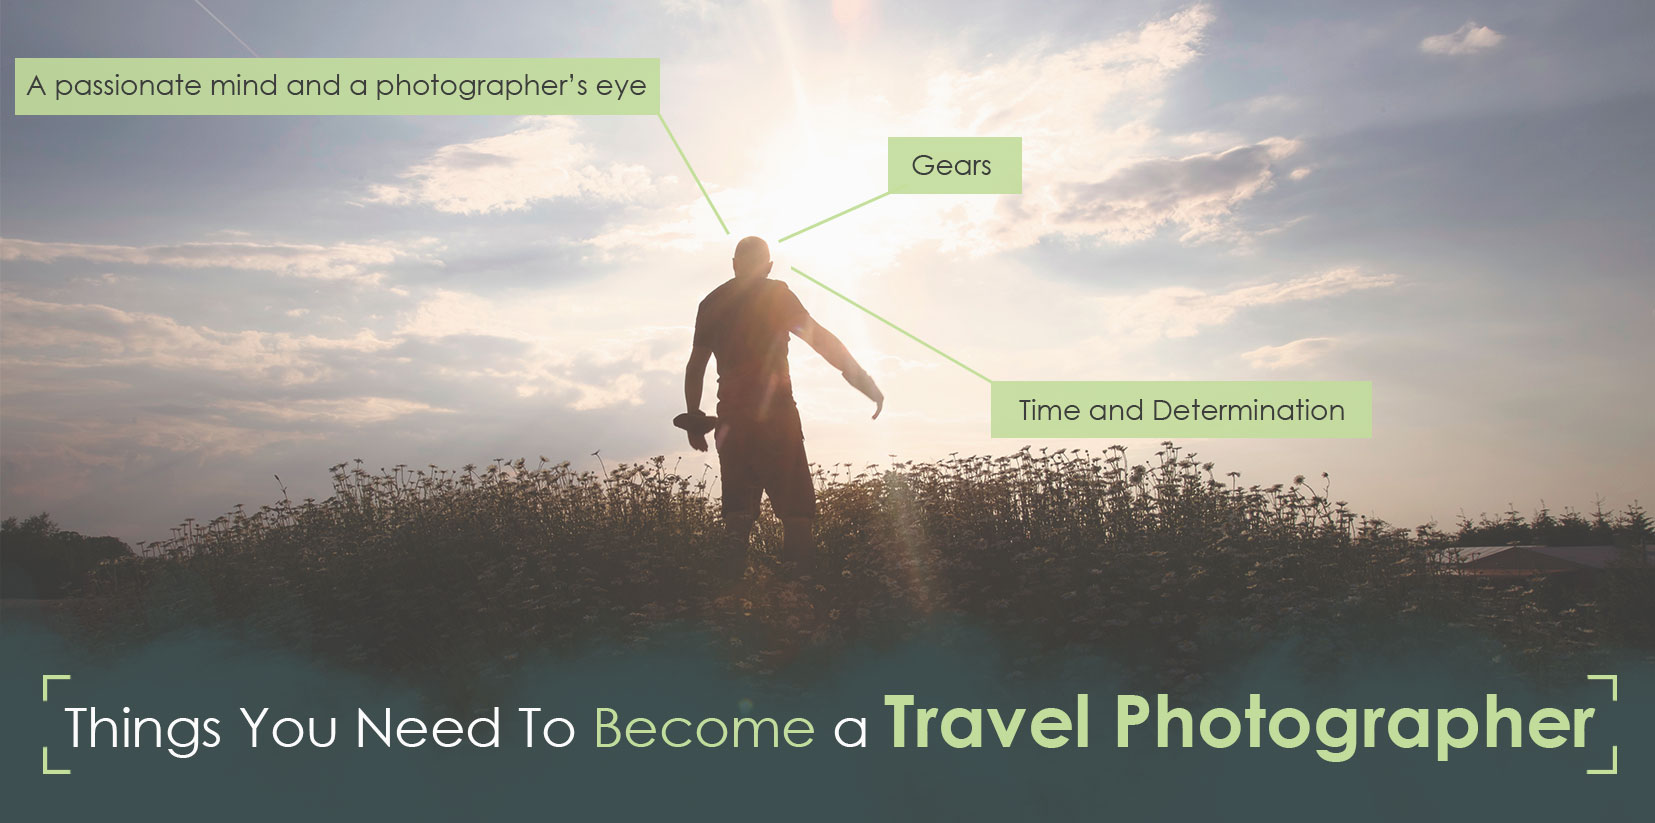 Things-You-Need-To-Become-a-Travel-Photographer